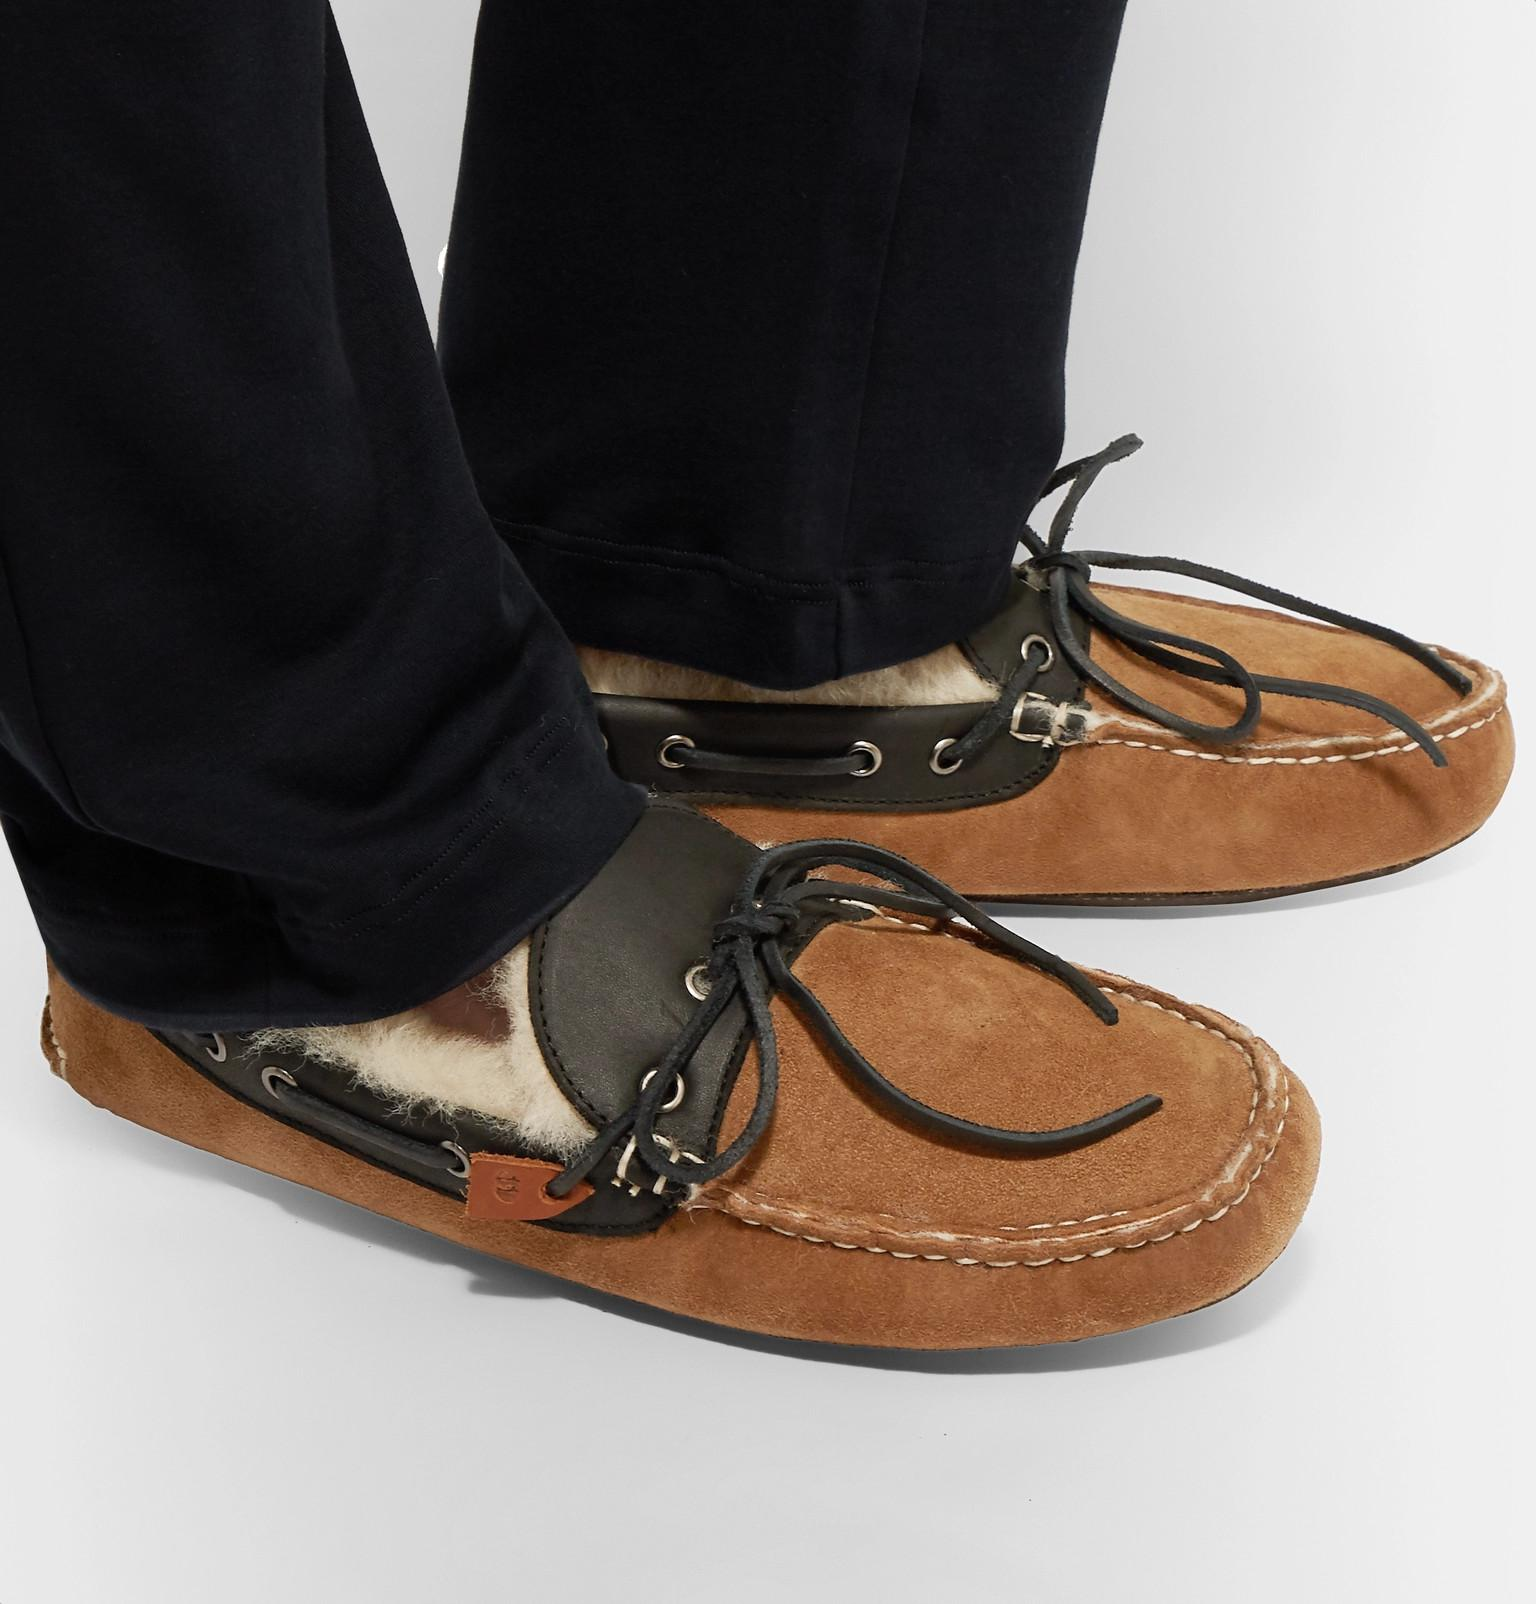 5d4c2746b03 Quoddy Fireside Leather-trimmed Shearling-lined Suede Slippers in ...